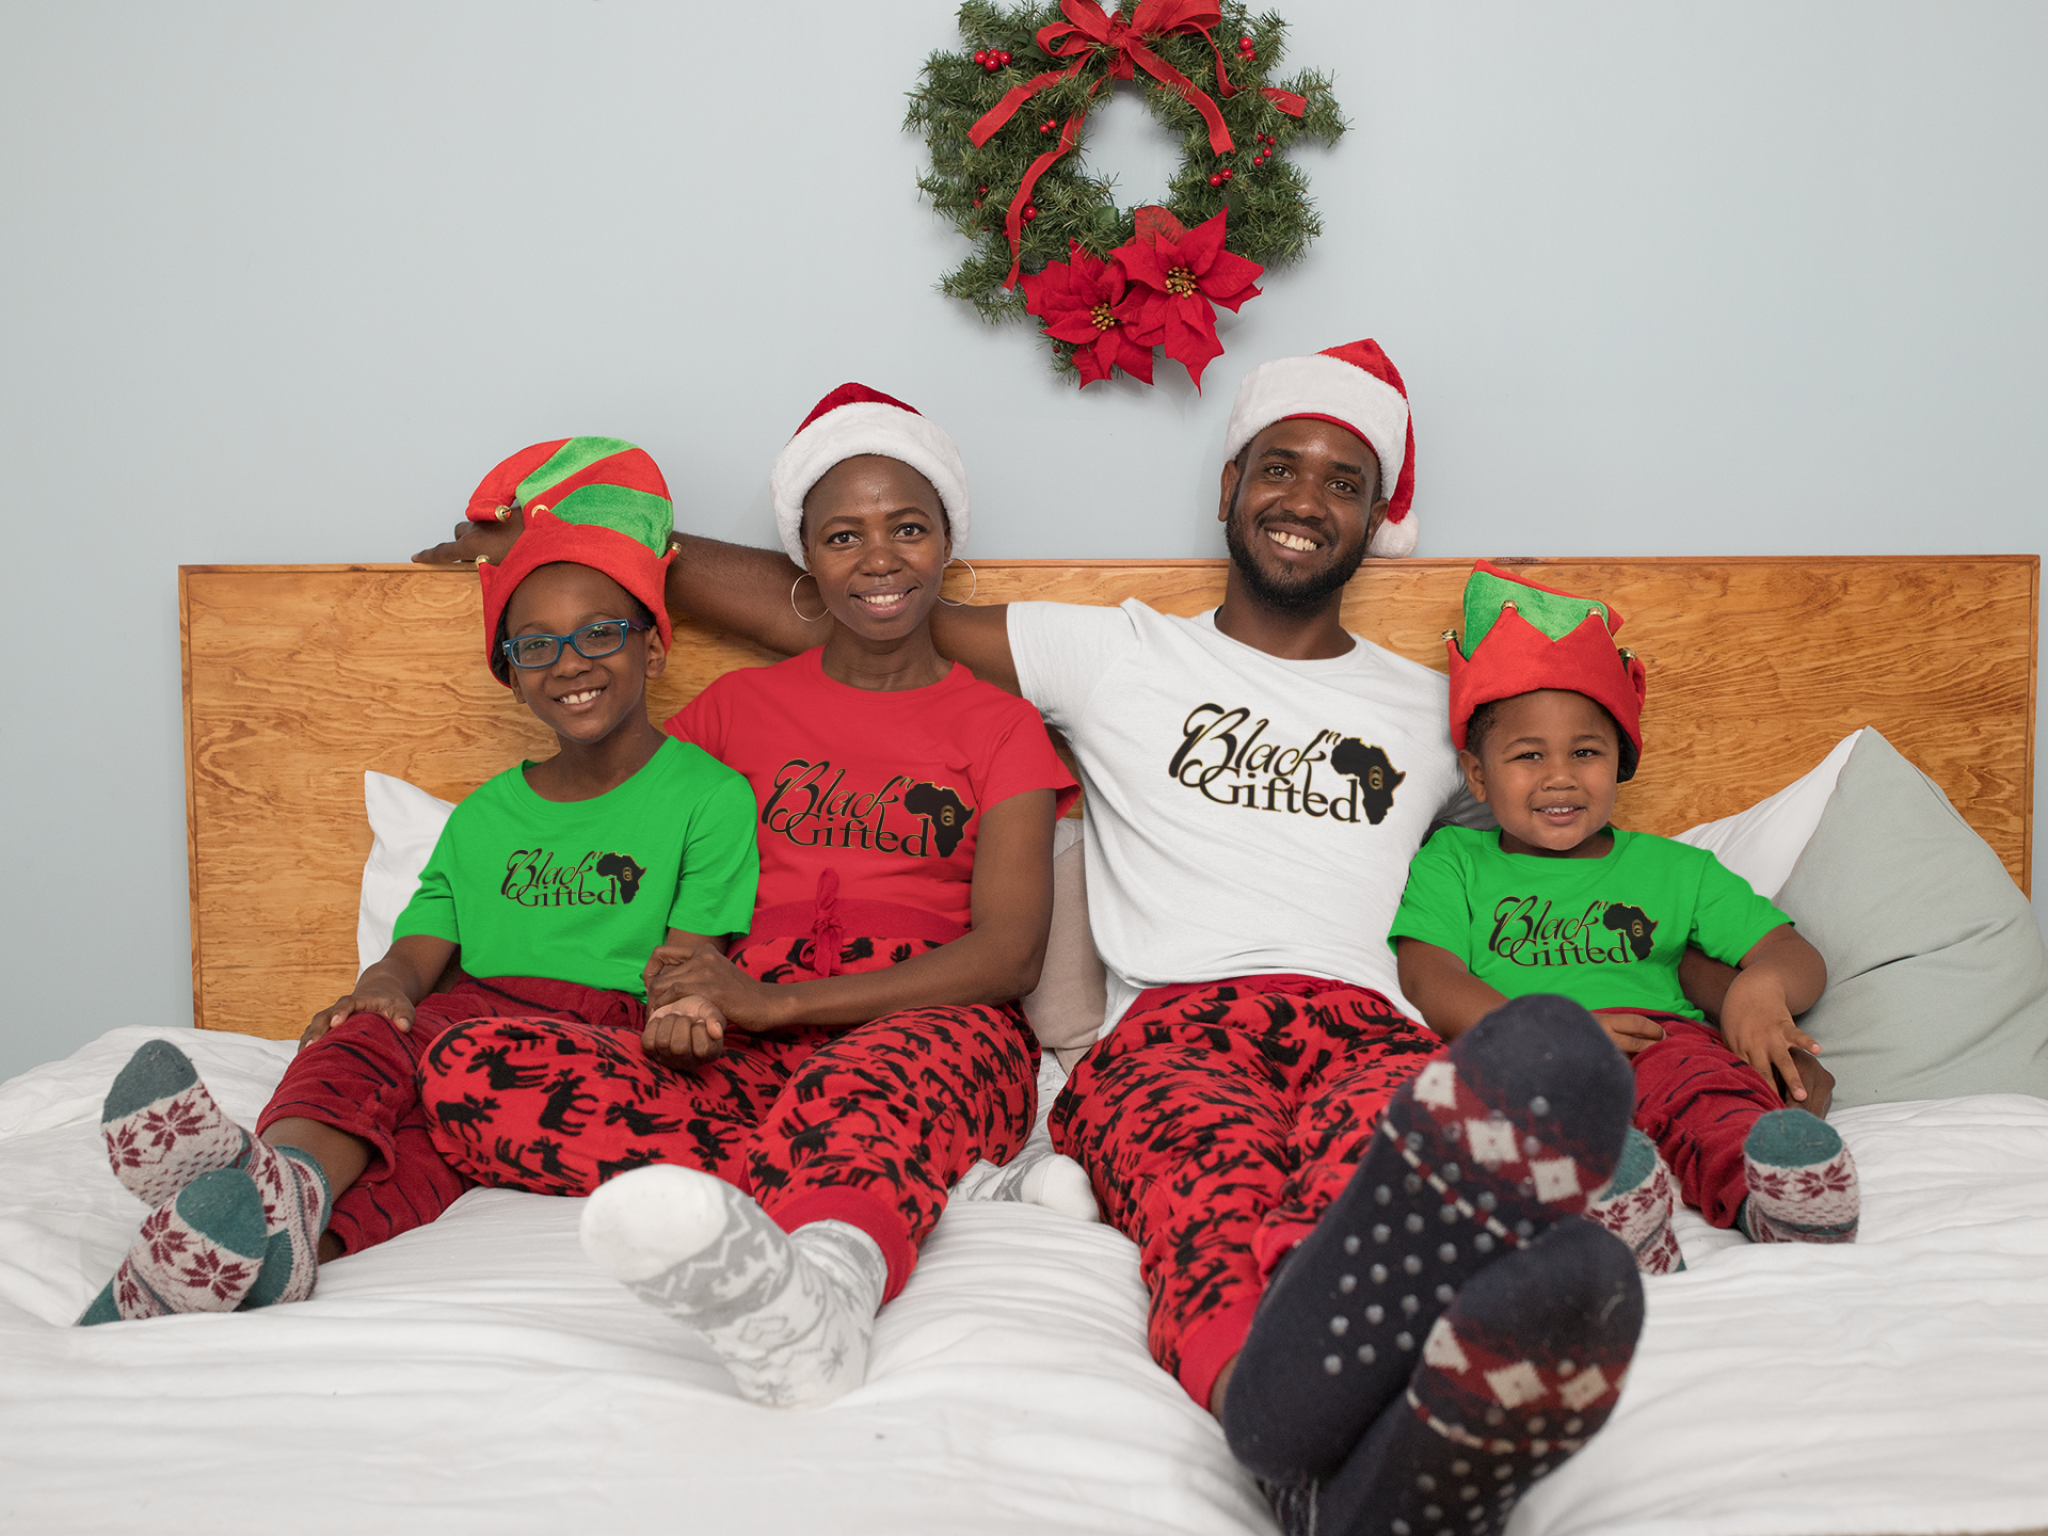 x-mas-mockup-of-a-family-with-matching-t-shirts-in-the-bedroom-30360.png